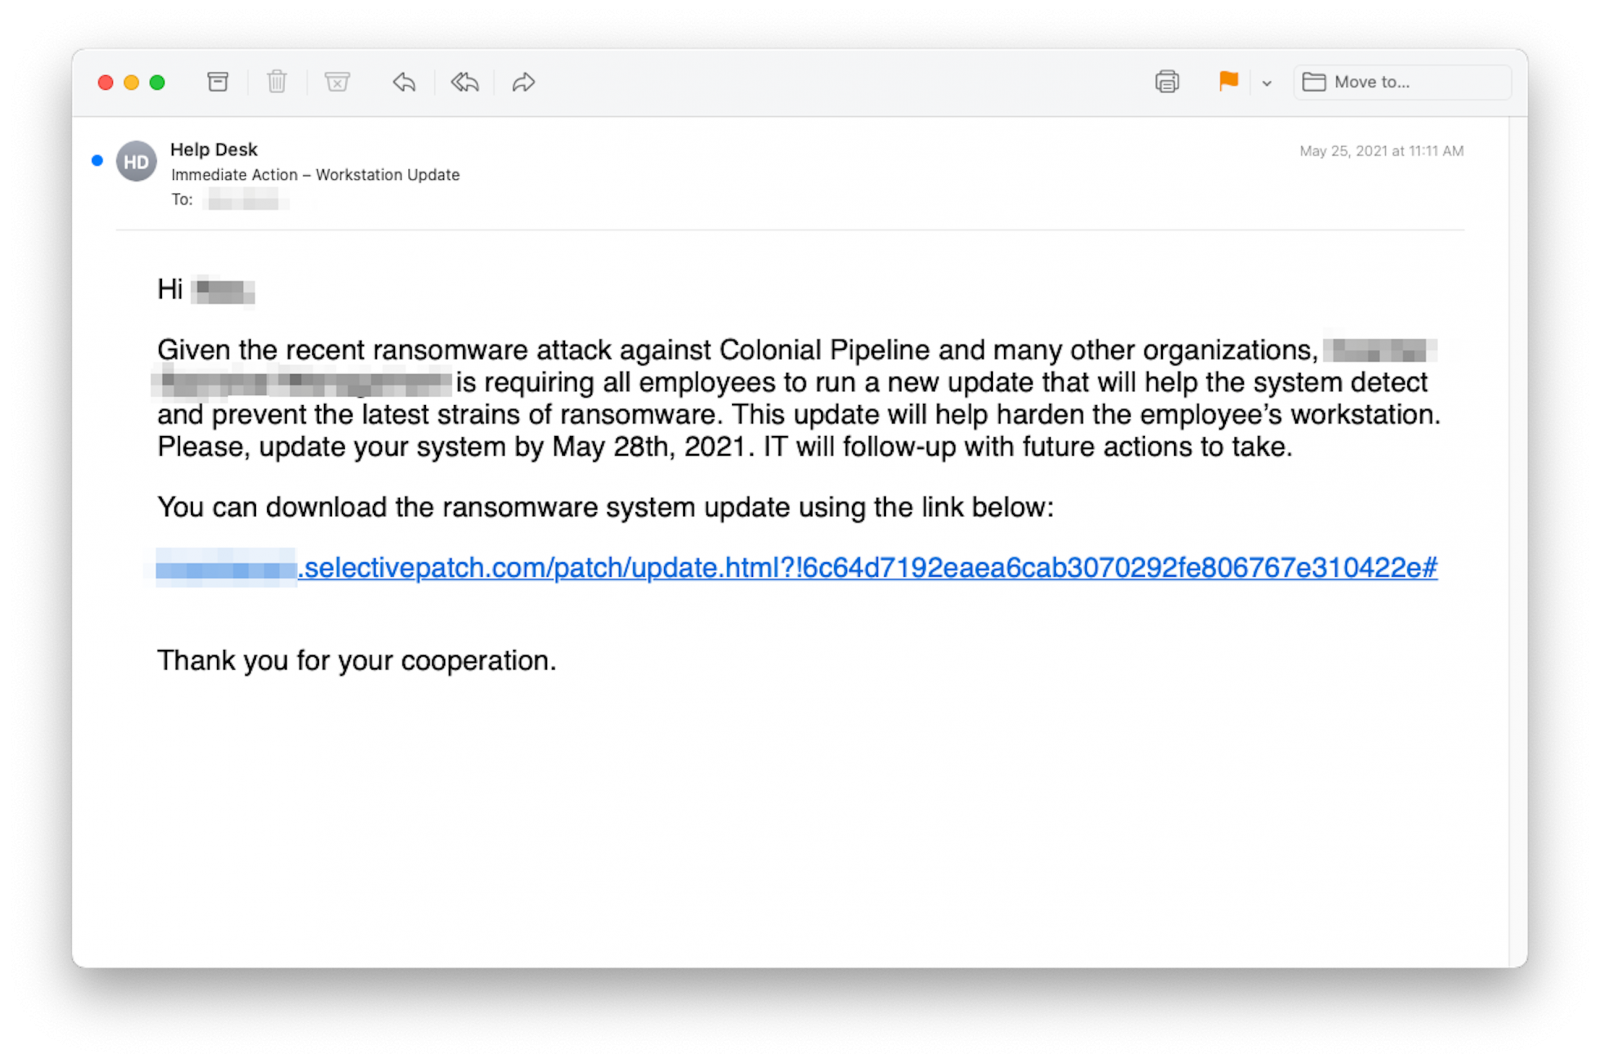 Ransomware attack on Colonial Pipeline used in phishing